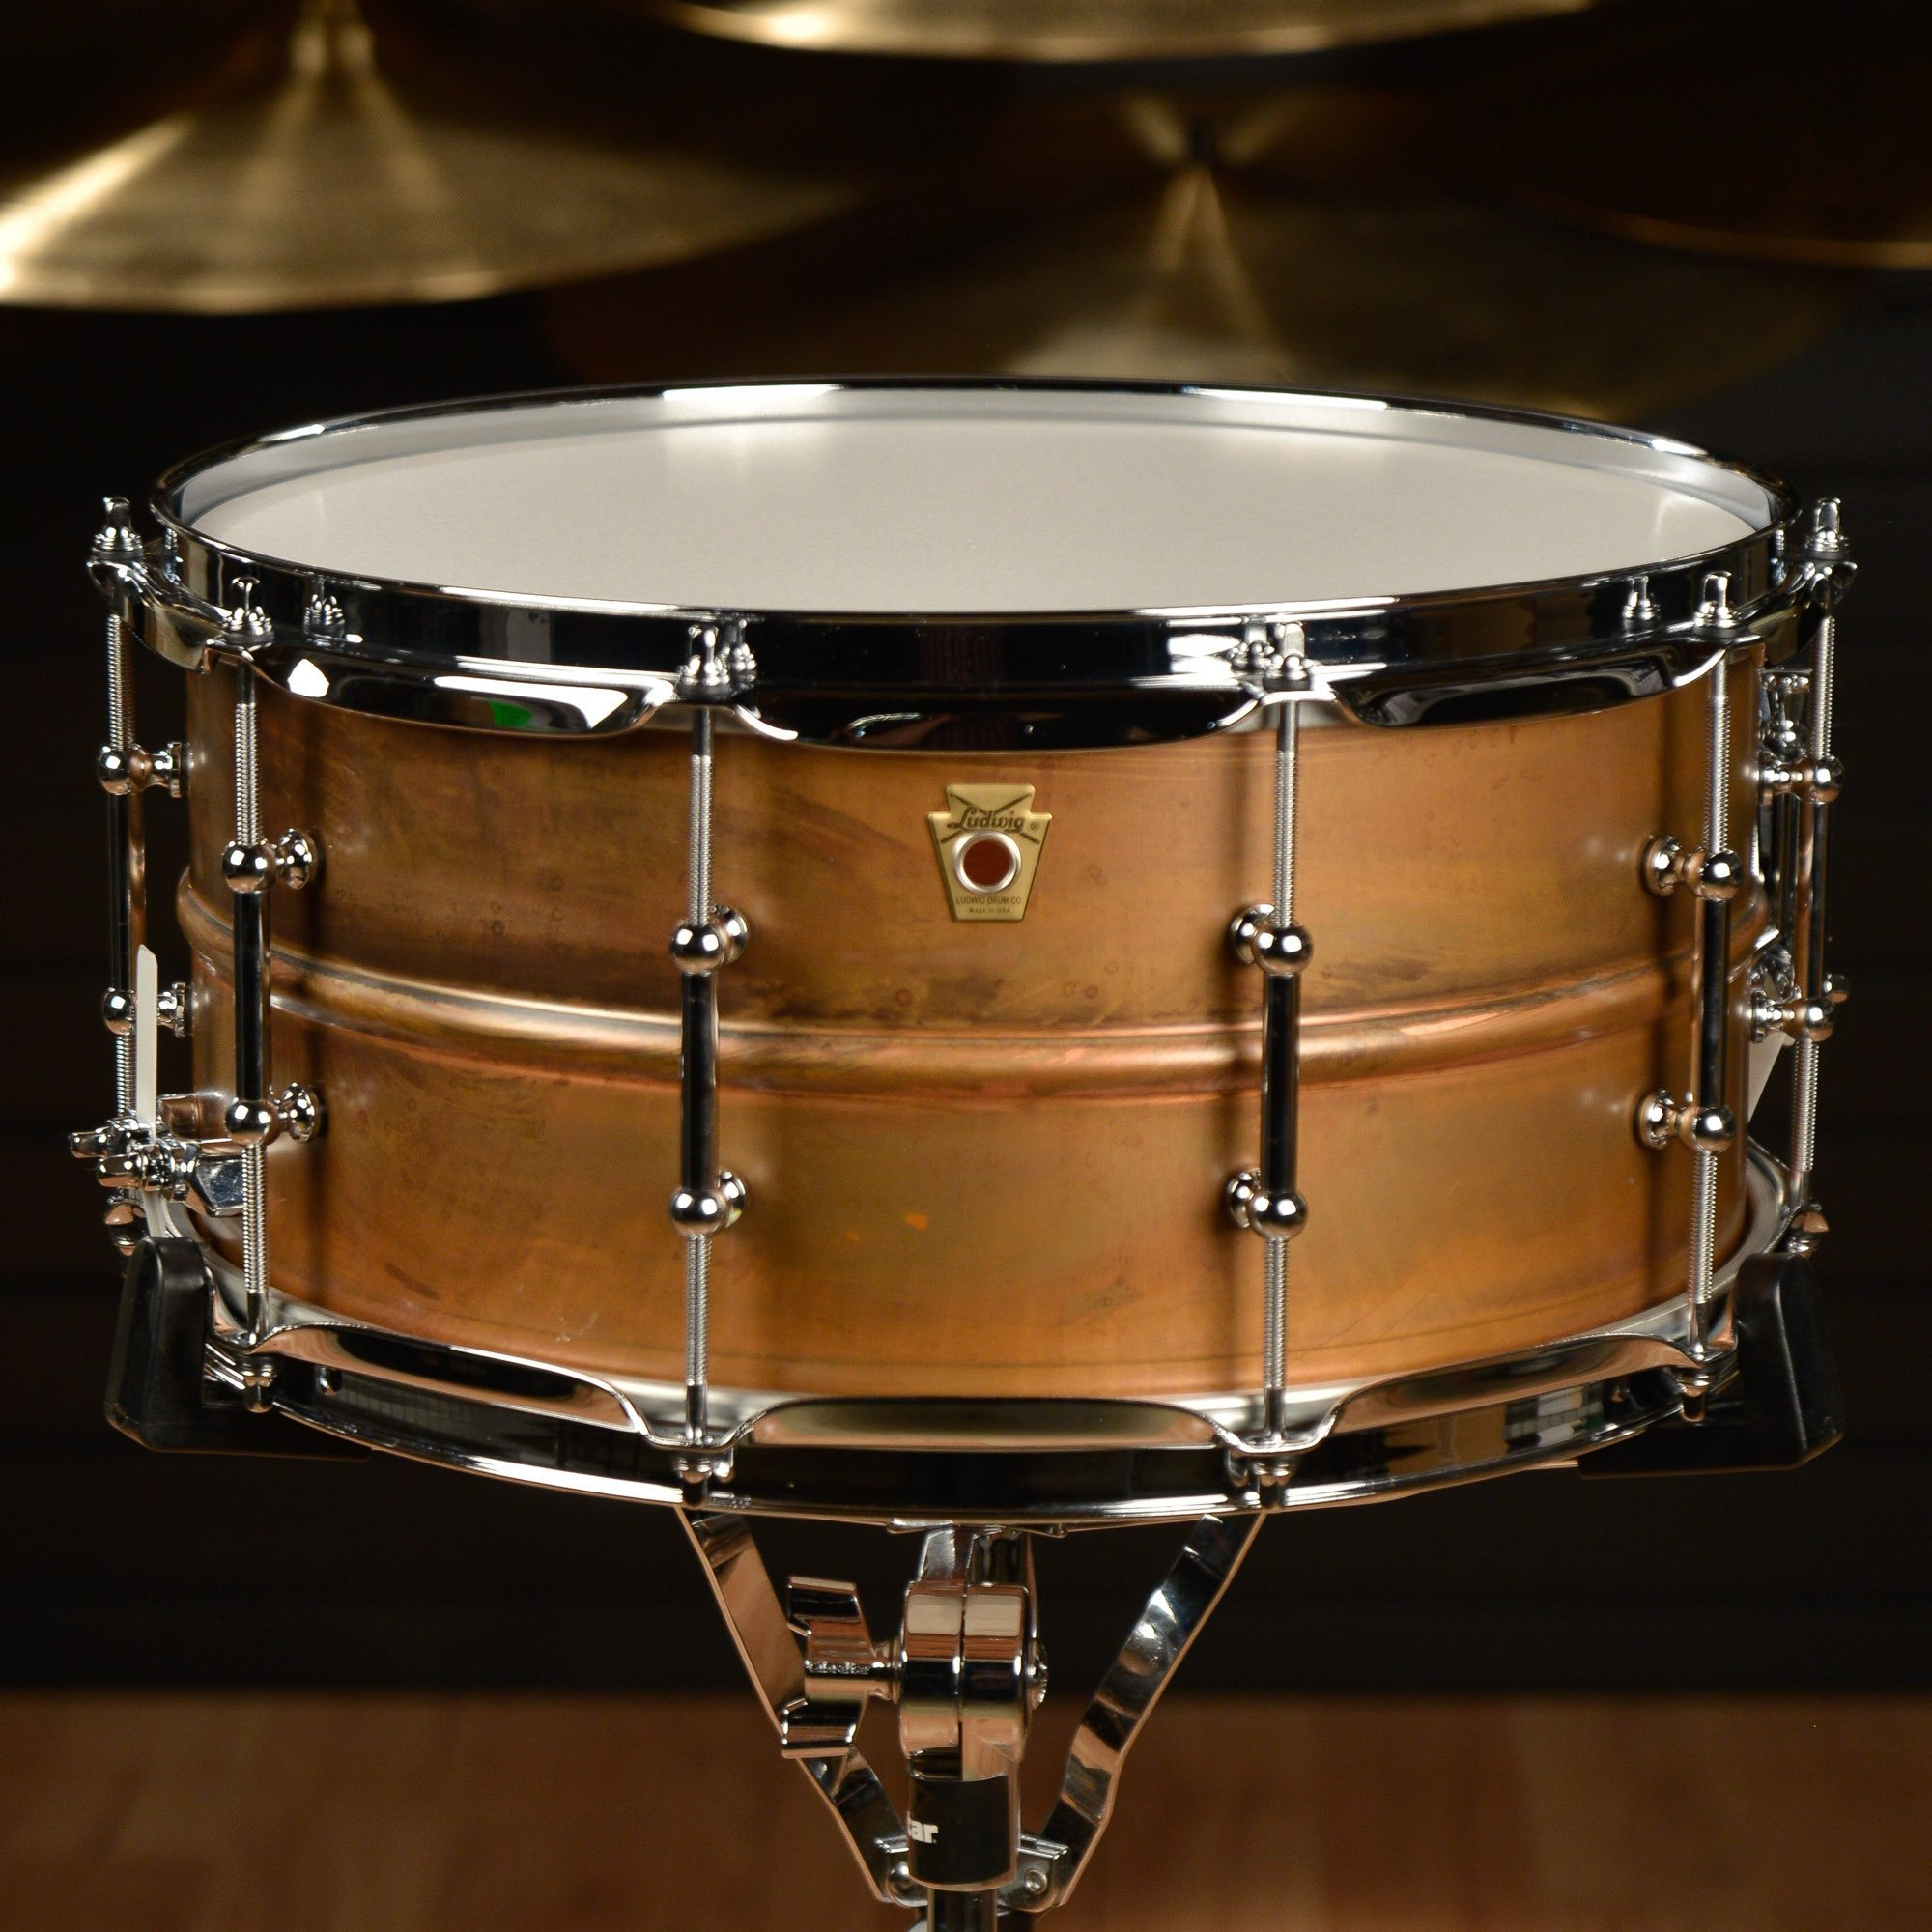 Ludwig Copper Phonic Smooth Snare Drum 14 x 6.5 in. Raw Smooth Finish with Tube Lugs